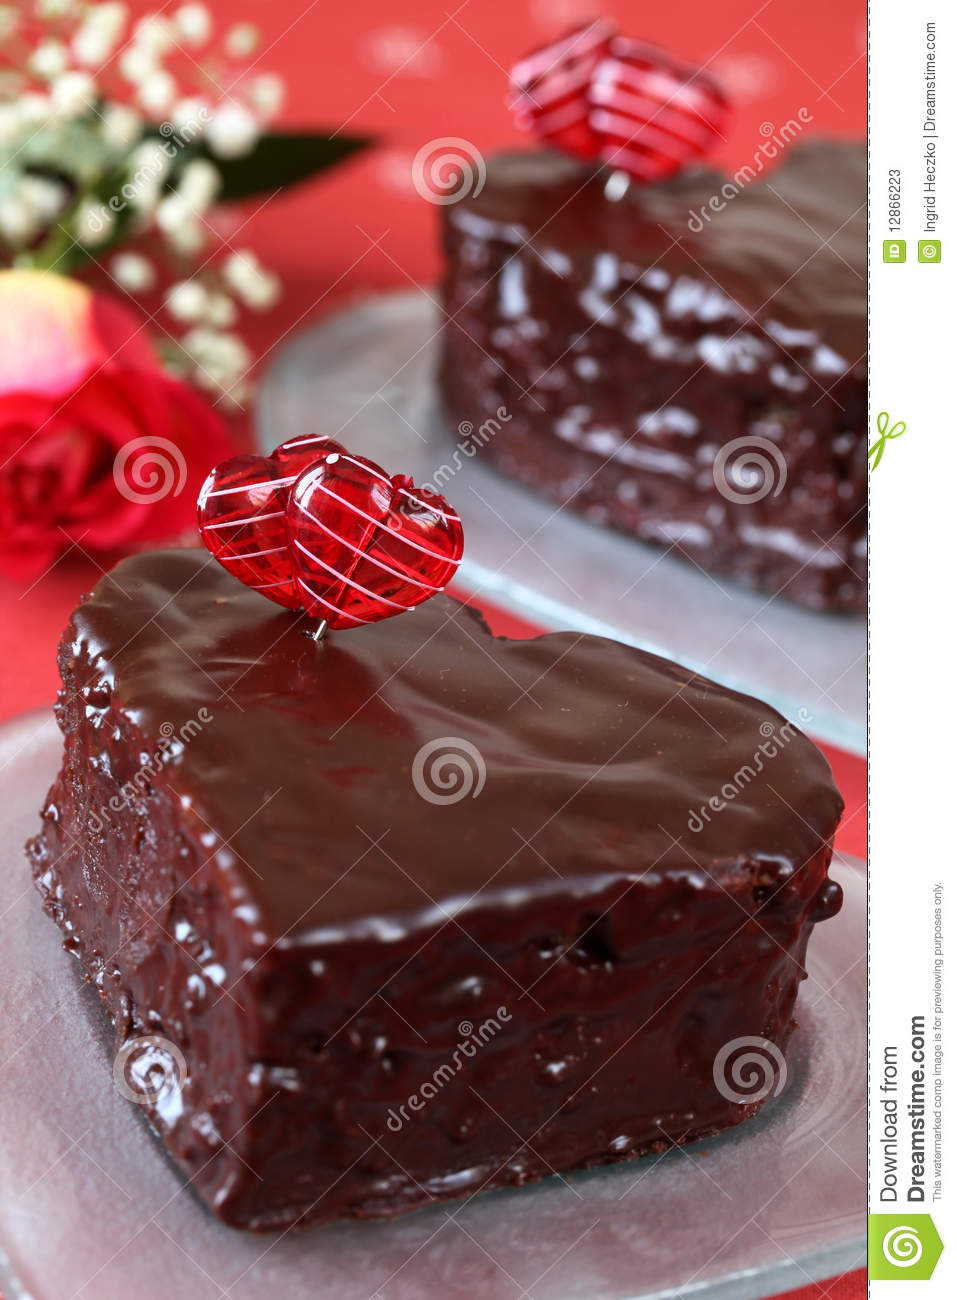 Heart Shaped Chocolate Cakes And Rose Stock Photos - Image: 12866223